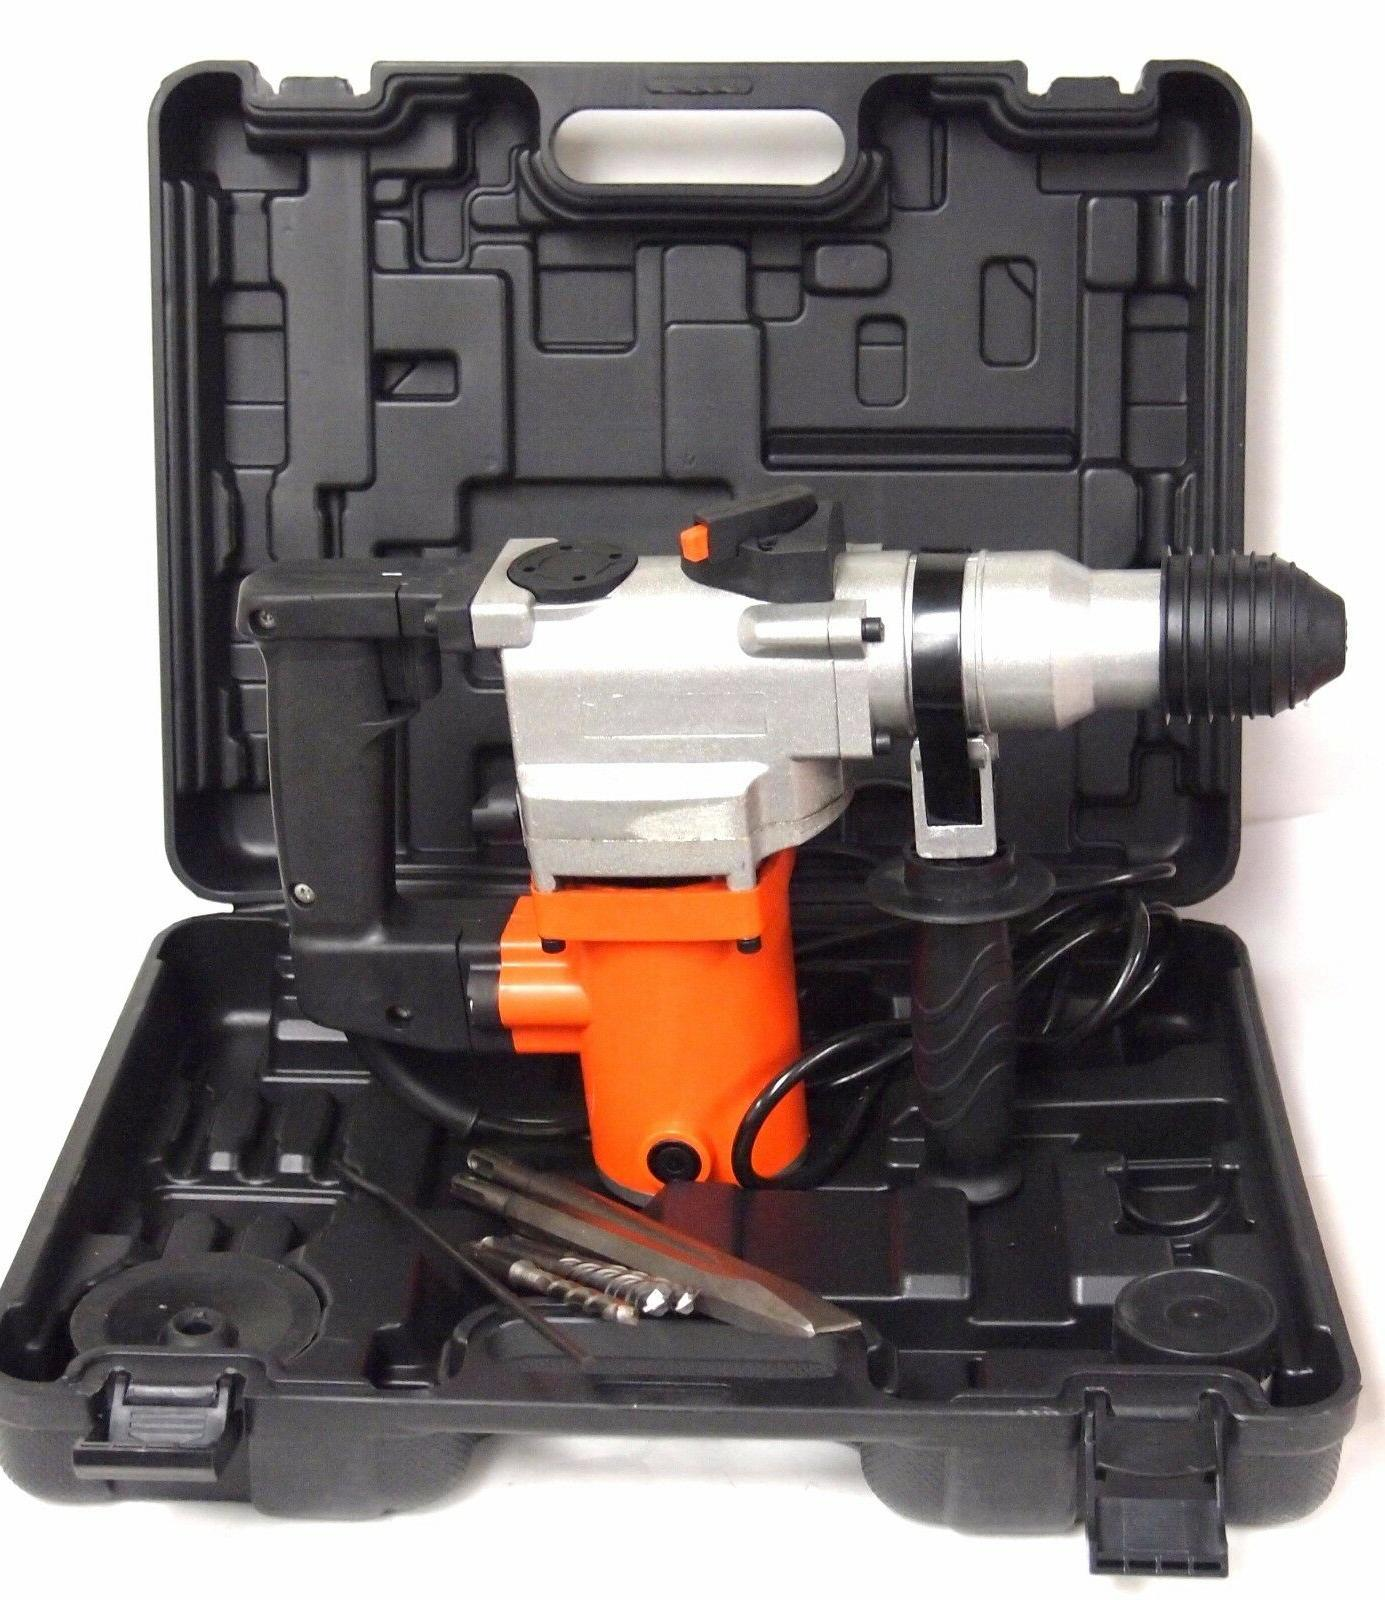 sds plus rotary hammer drill